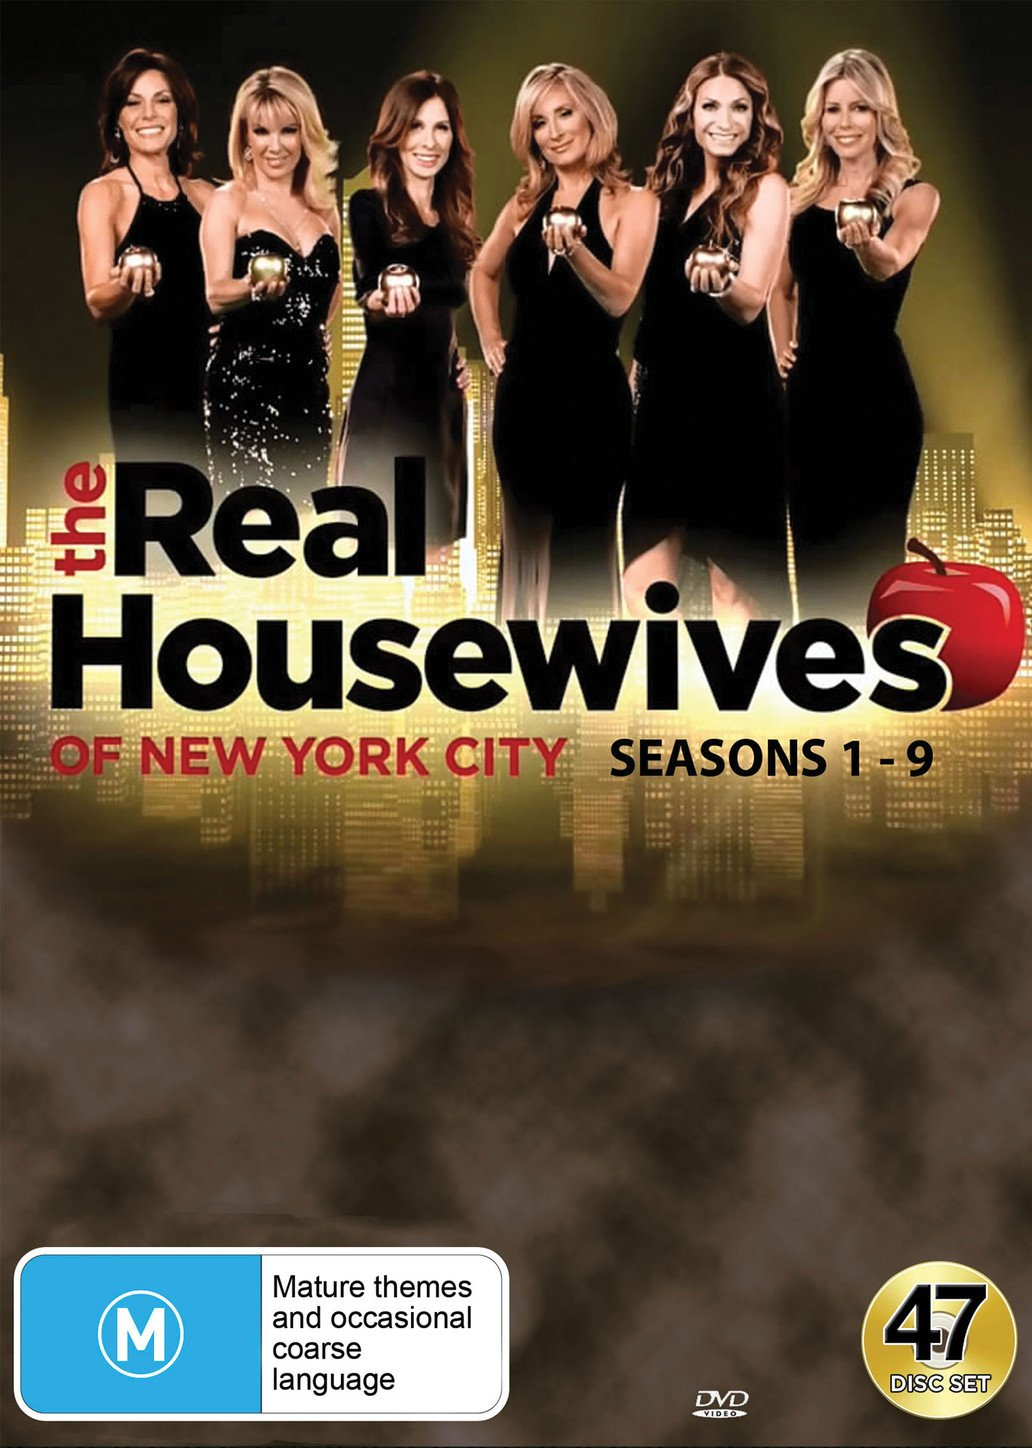 The Real Housewives of New York - Complete Series [Seasons 1 - 9] by